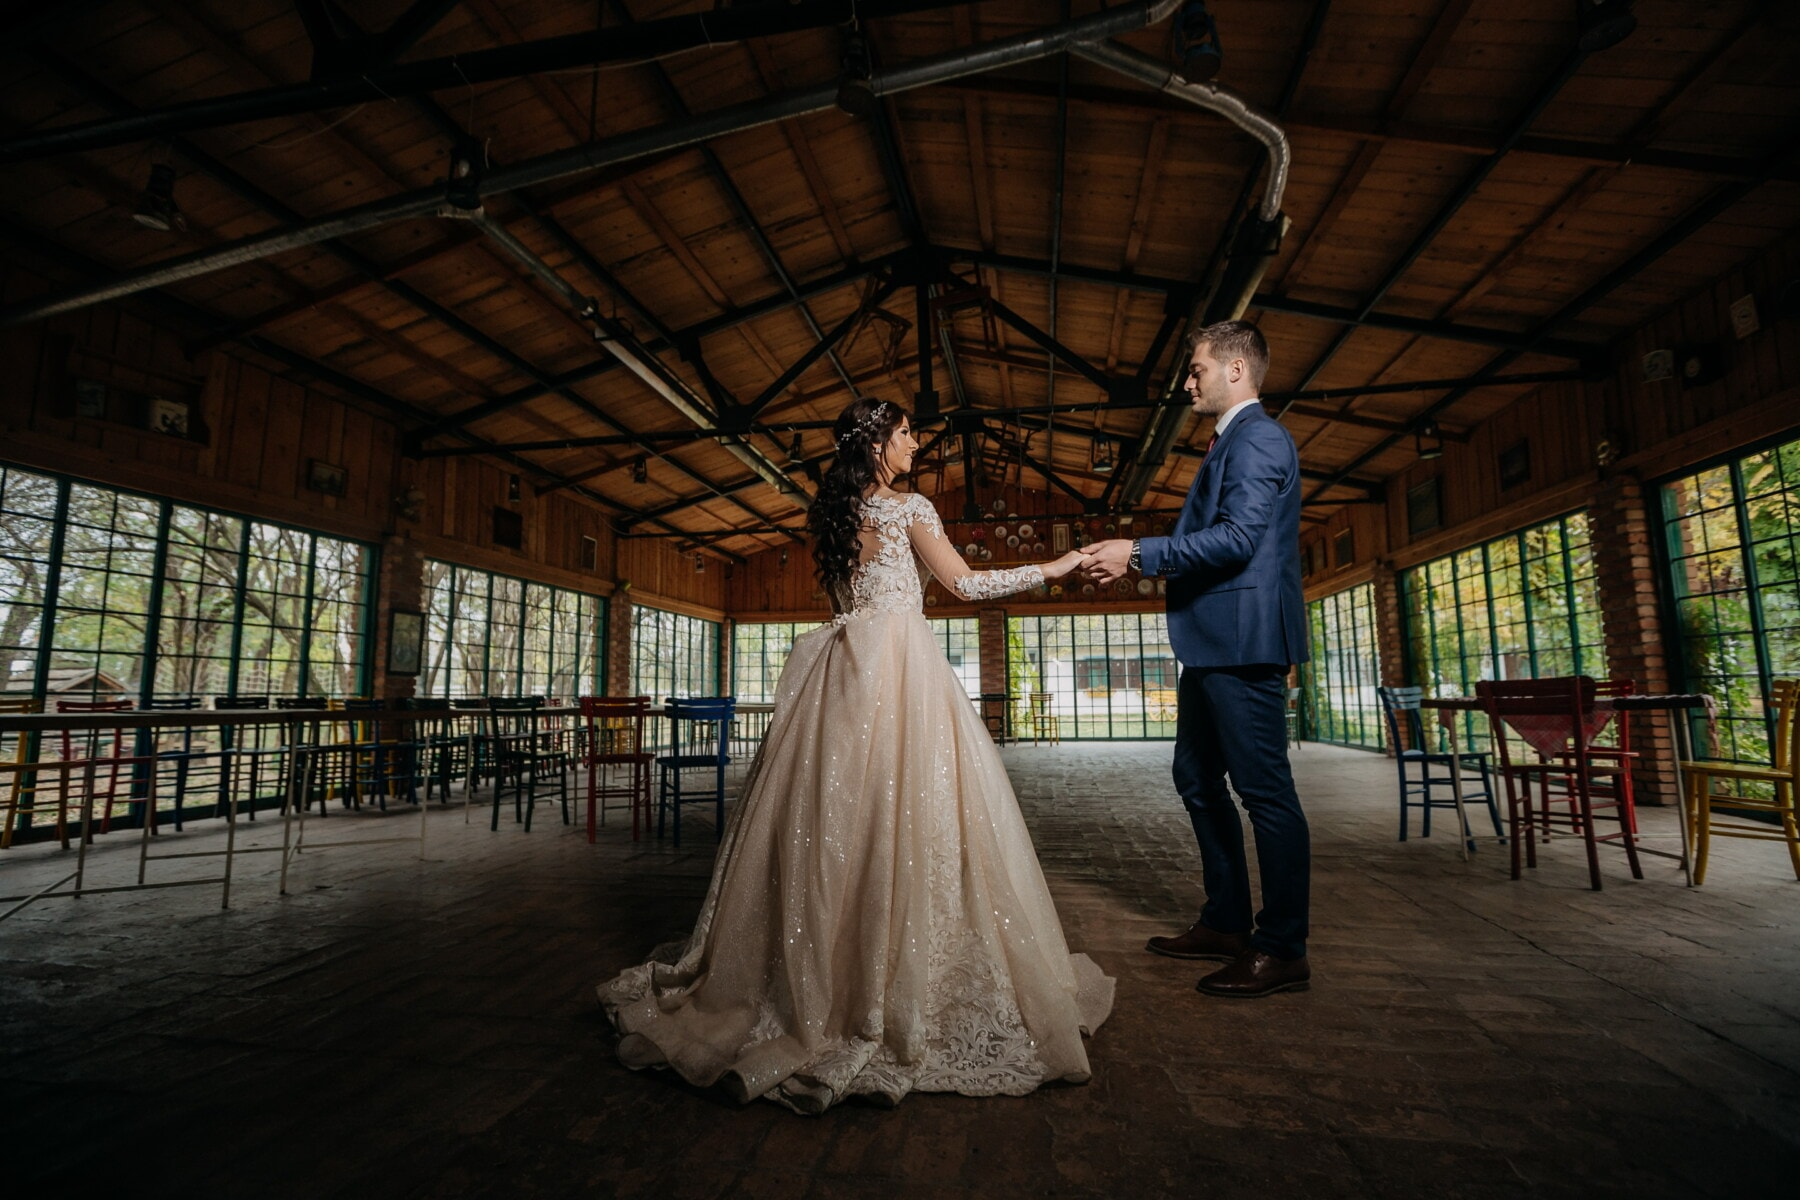 love date, hall, empty, warehouse, holding hands, man, young woman, girl, love, wedding